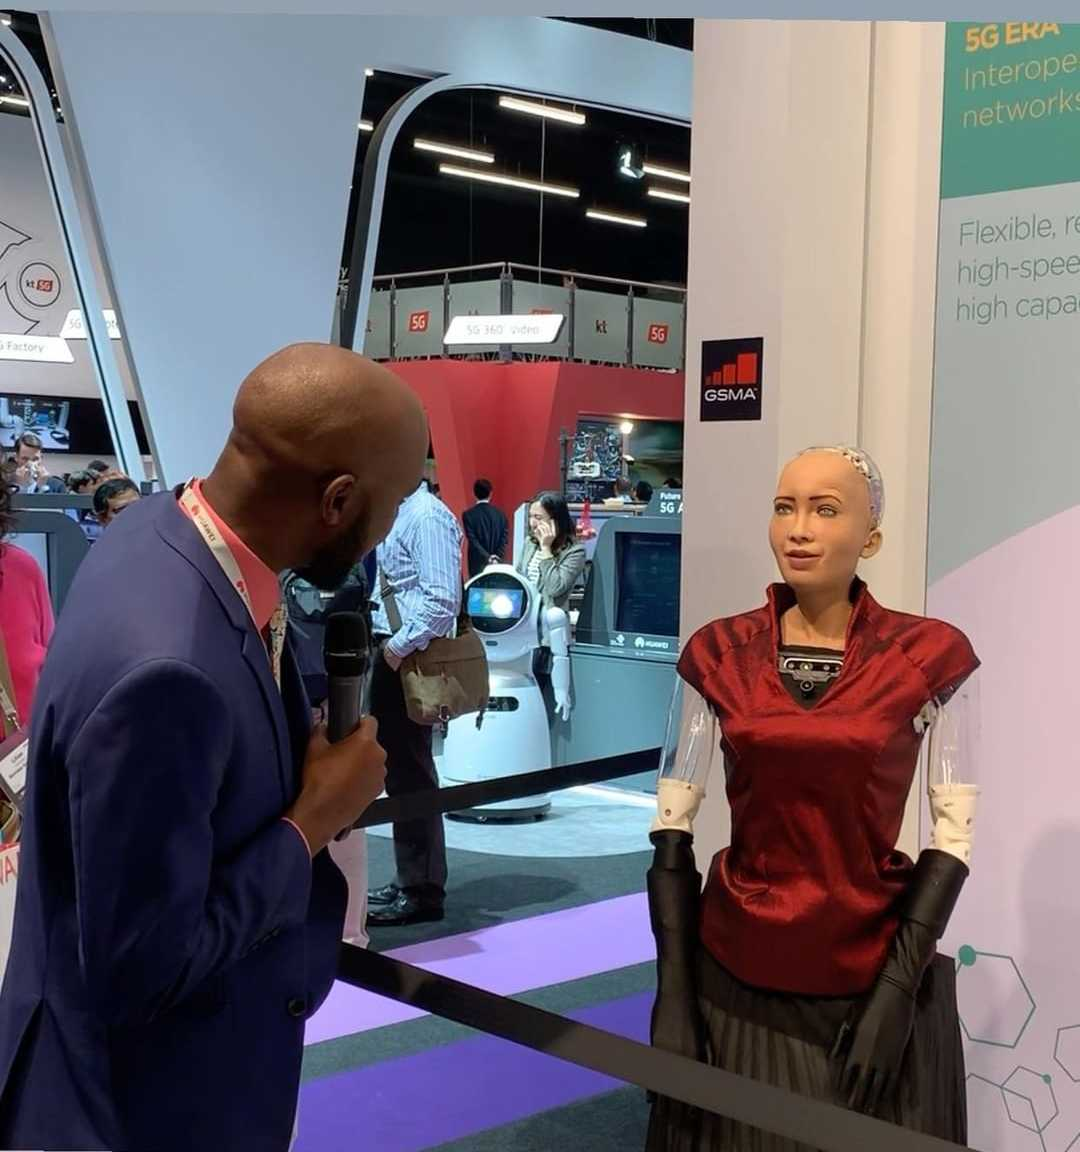 larry proposing1 e1551153439501 - Larry Madowo 'finds love' in a robot, pops the question